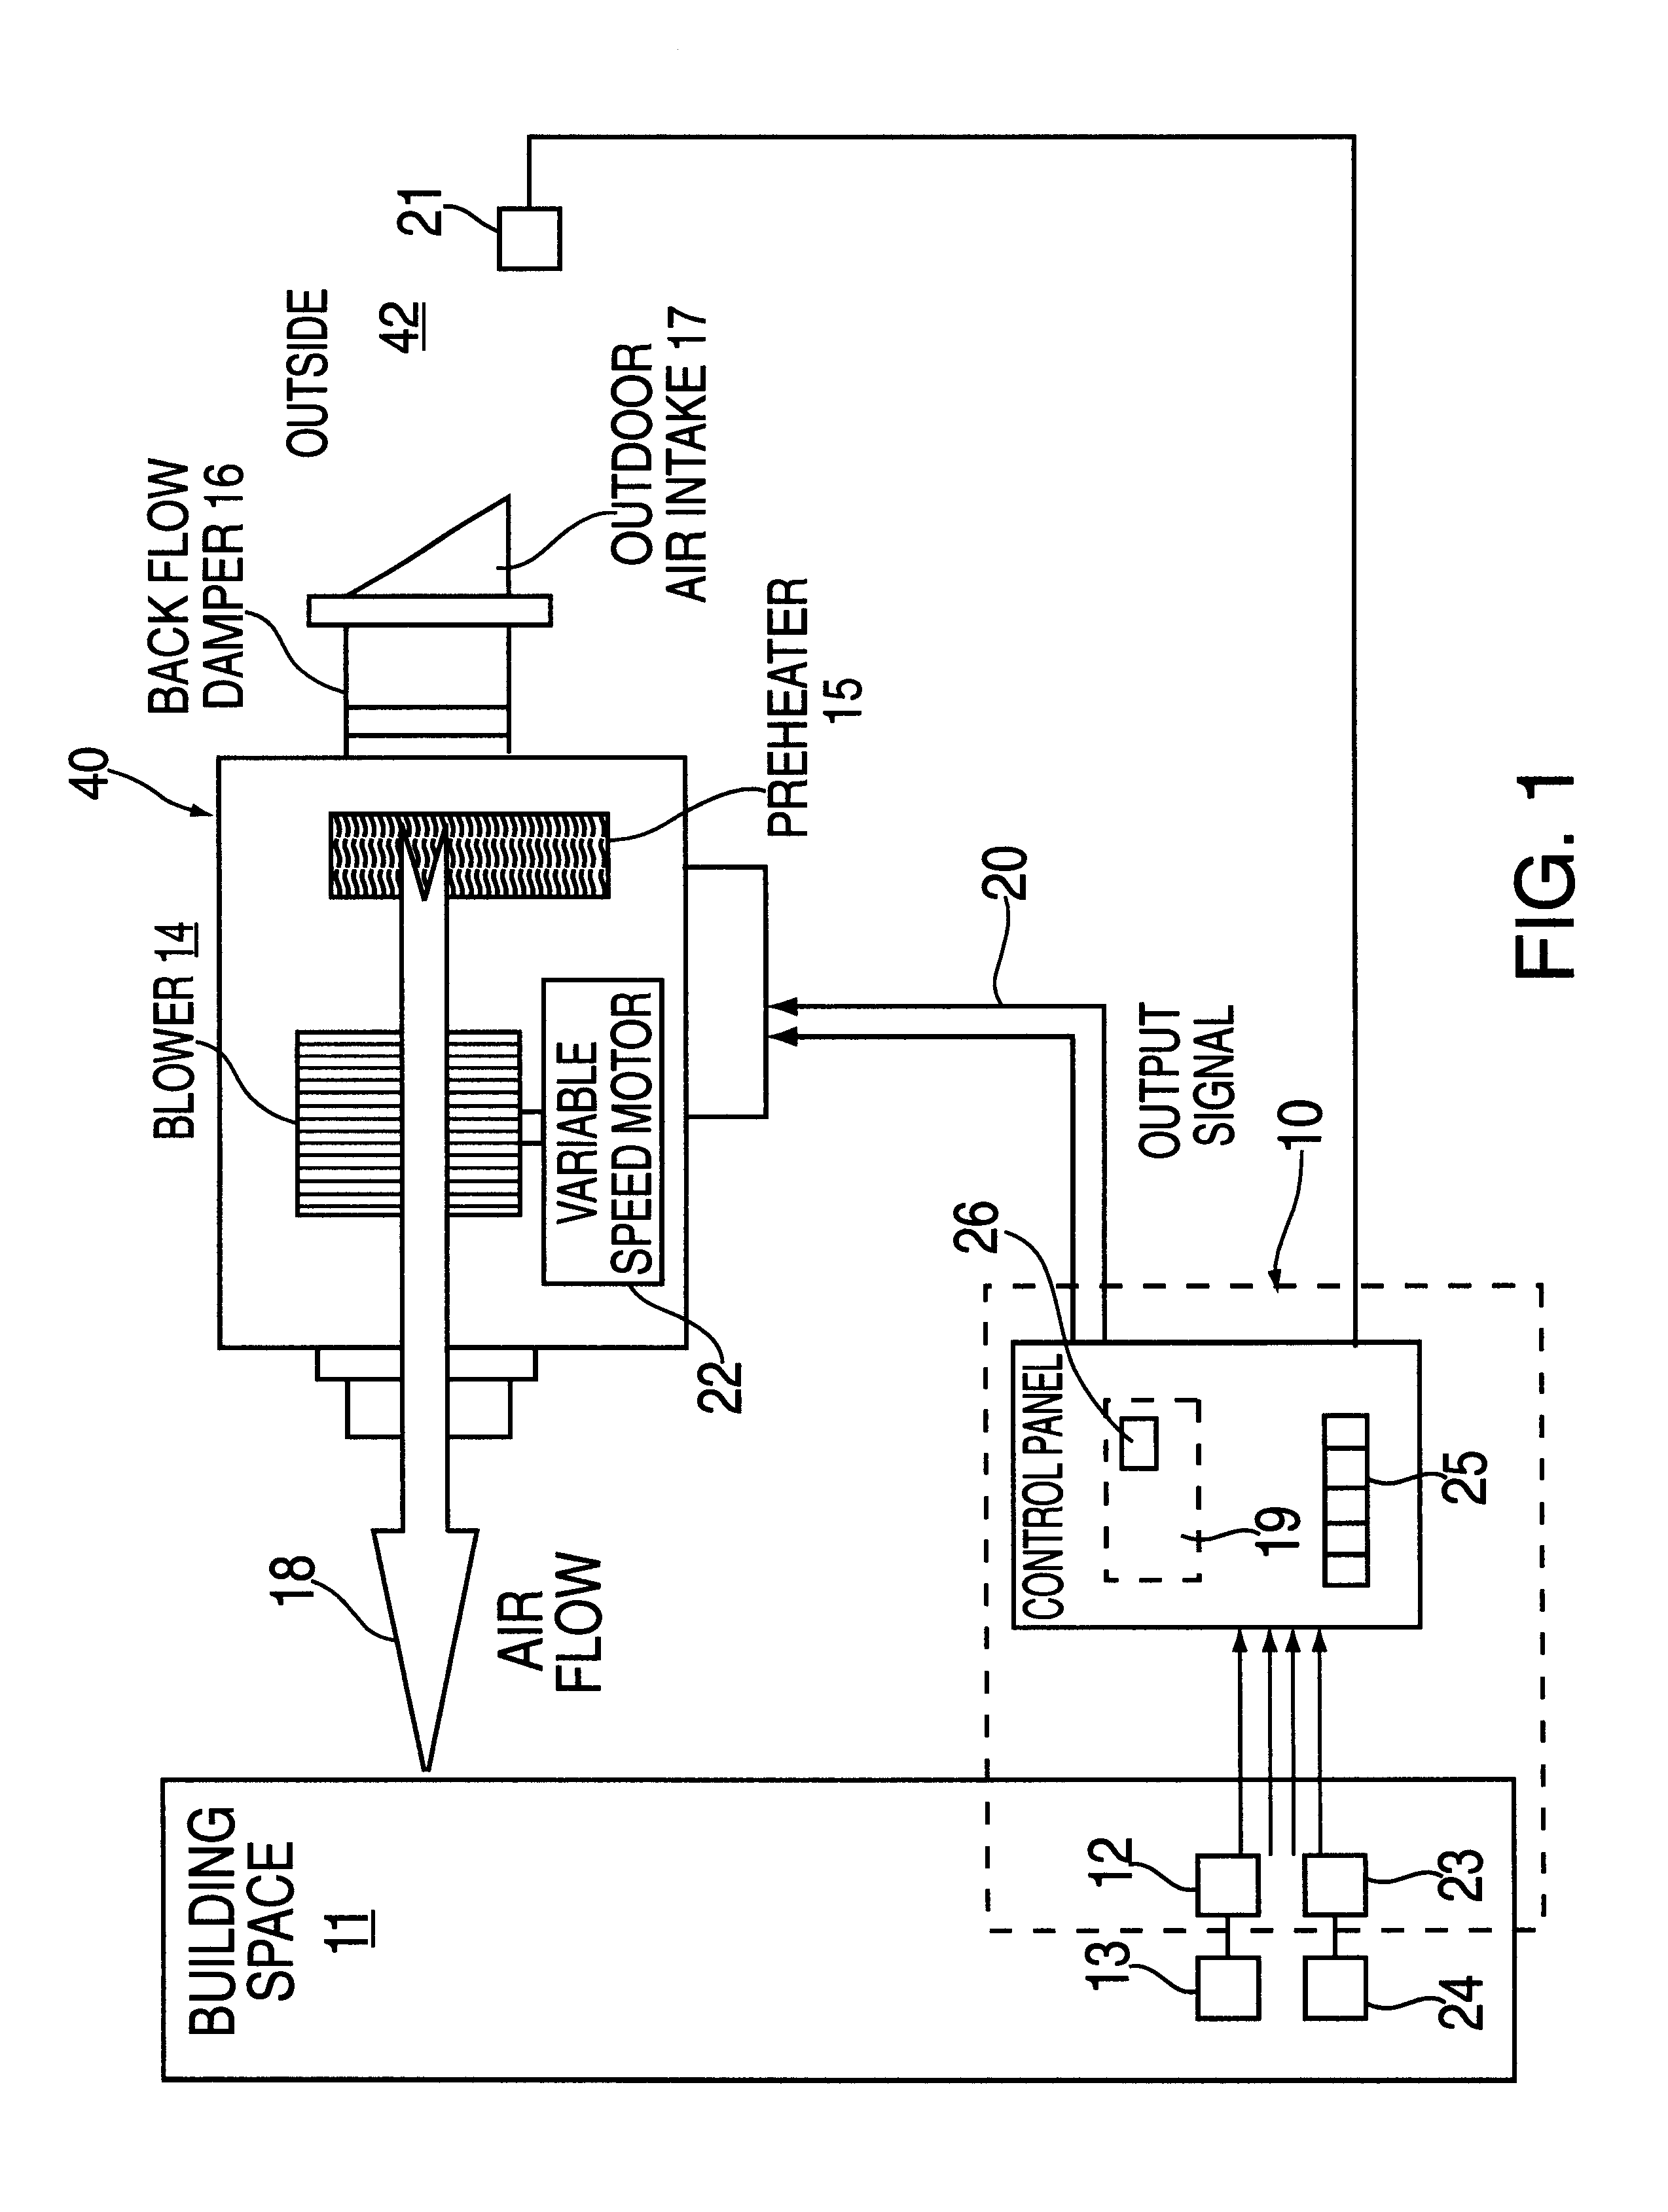 #3E3E3E Patent US6283851 Make Up Air Equipment Control    Recommended 5087 Make Up Air Damper pics with 2548x3380 px on helpvideos.info - Air Conditioners, Air Coolers and more